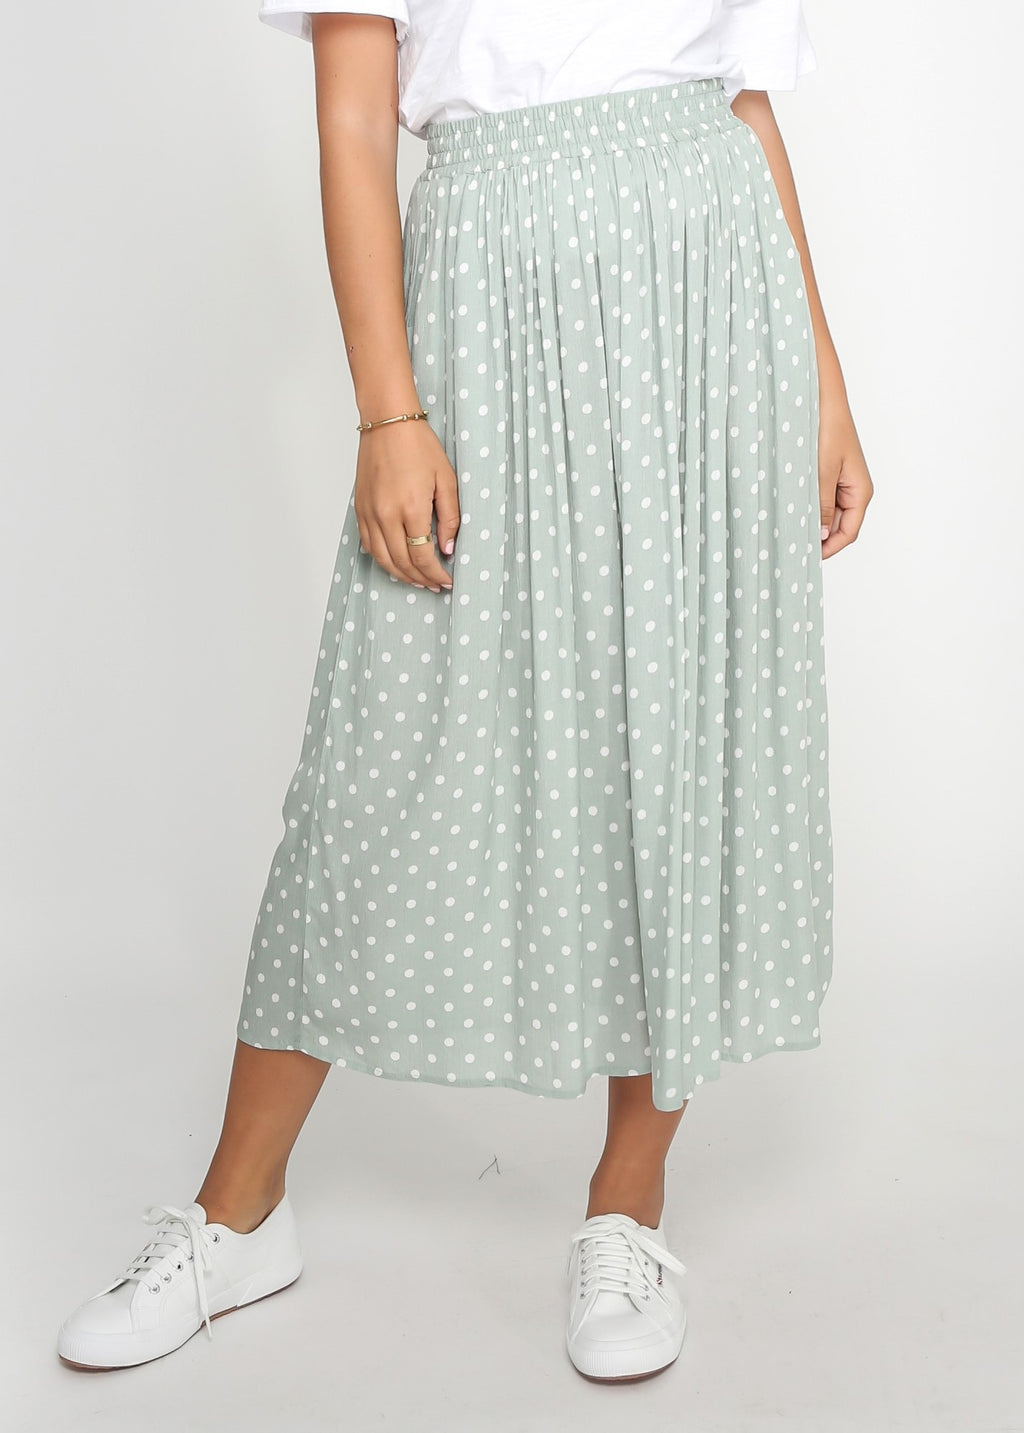 JEM SKIRT - SAGE POLKA DOT - MARK DOWN MADNESS